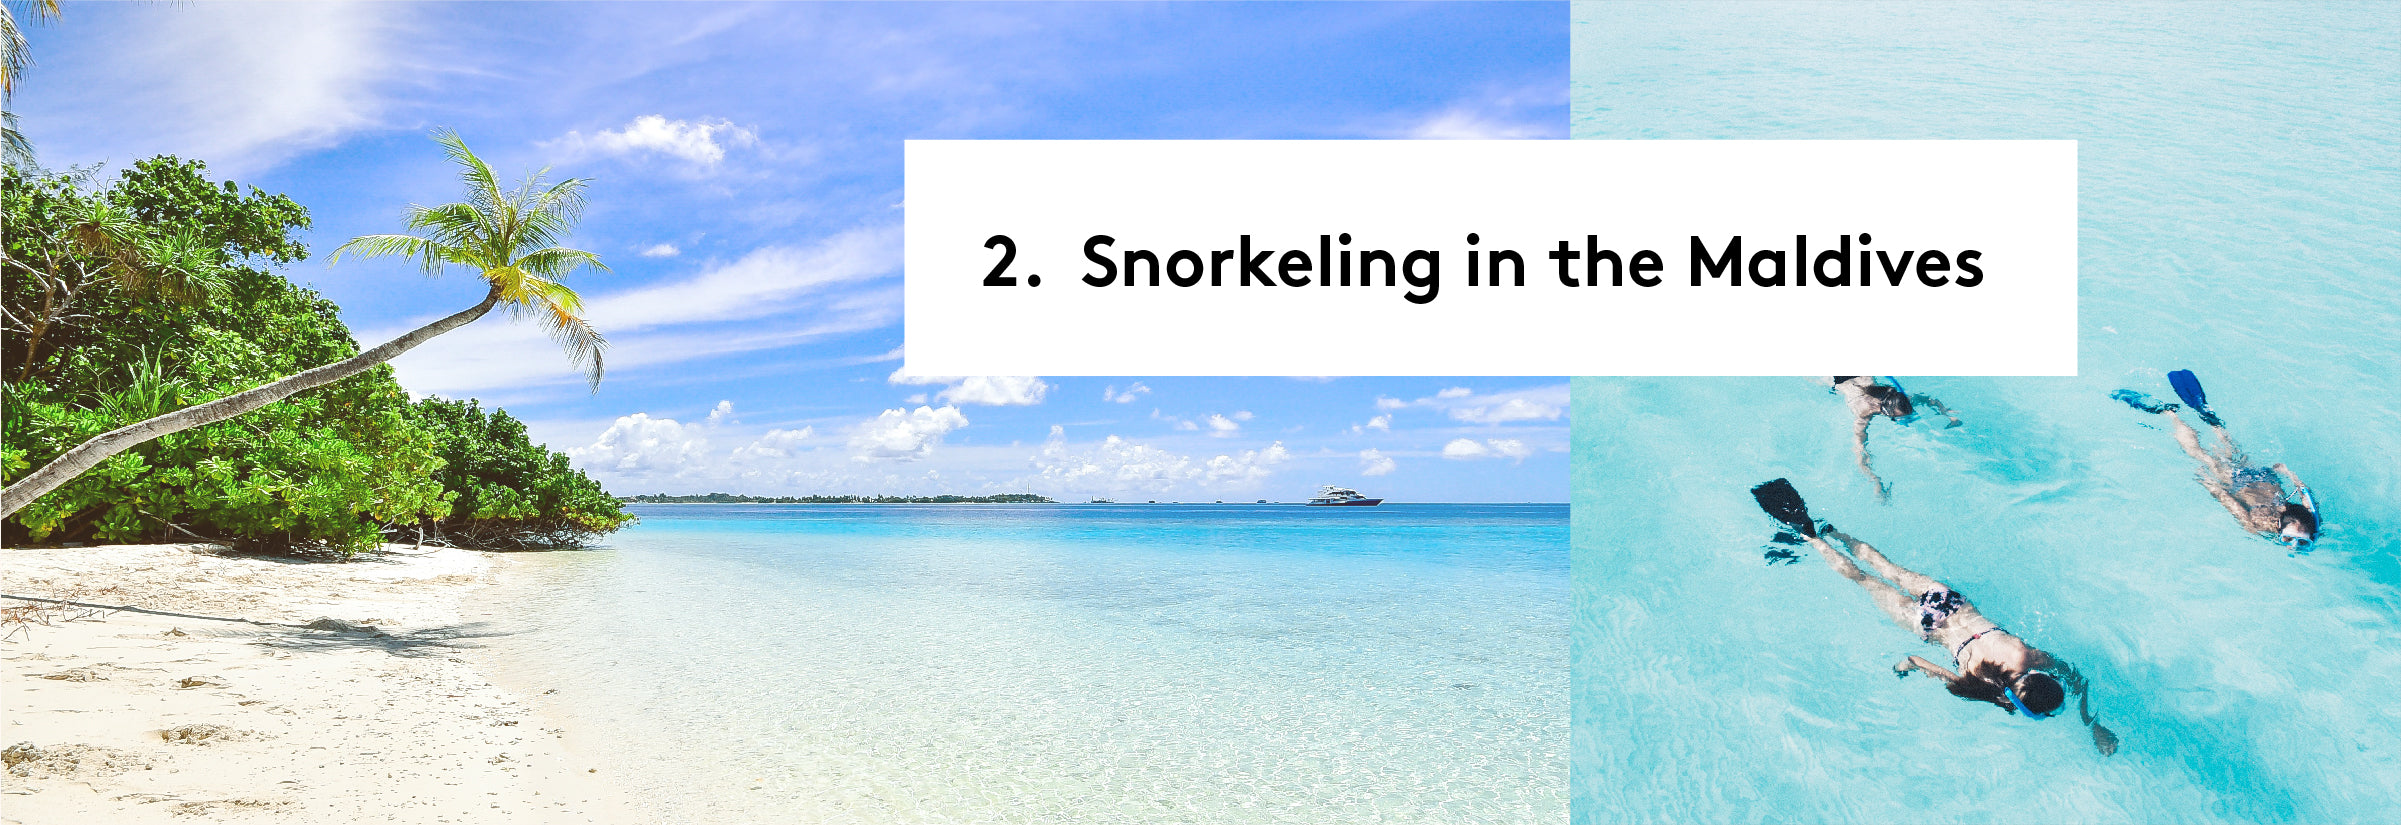 2. Snorkeling in the Maldives